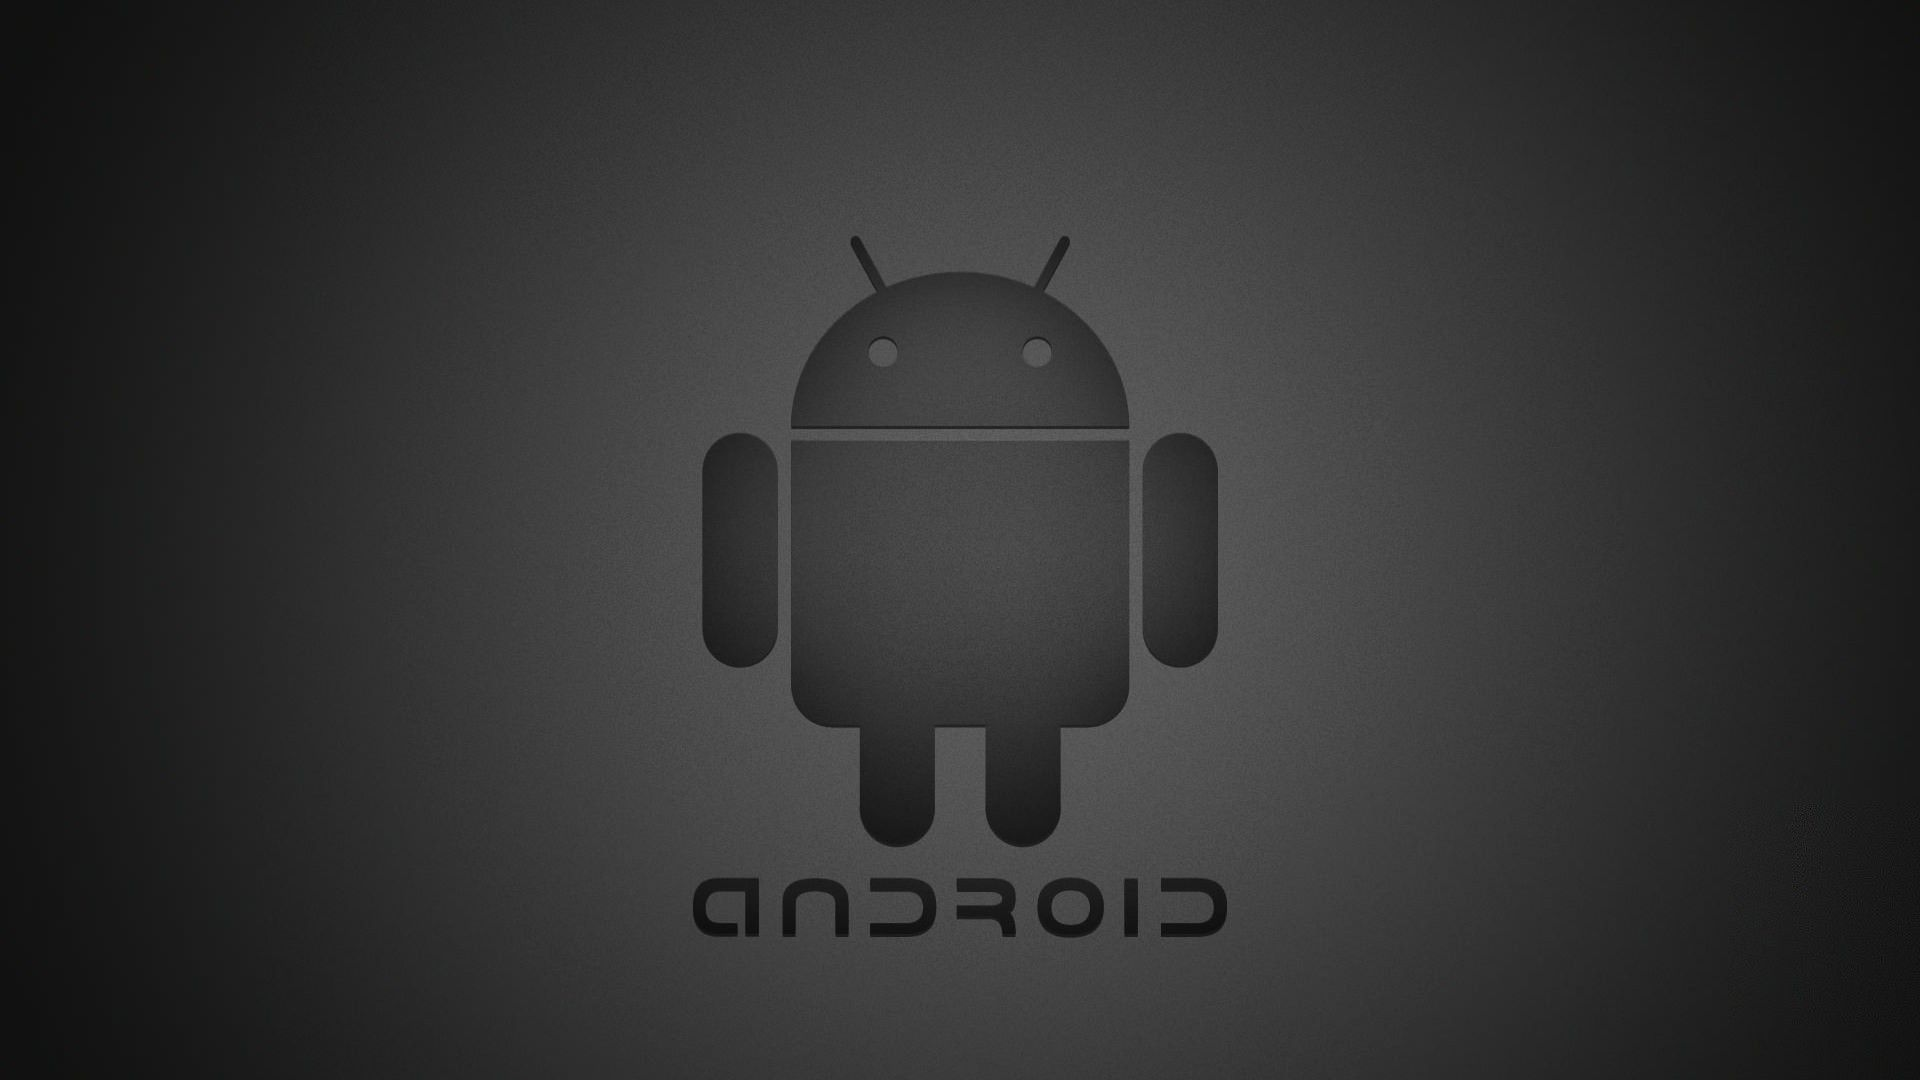 Wallpaper With Android Logo